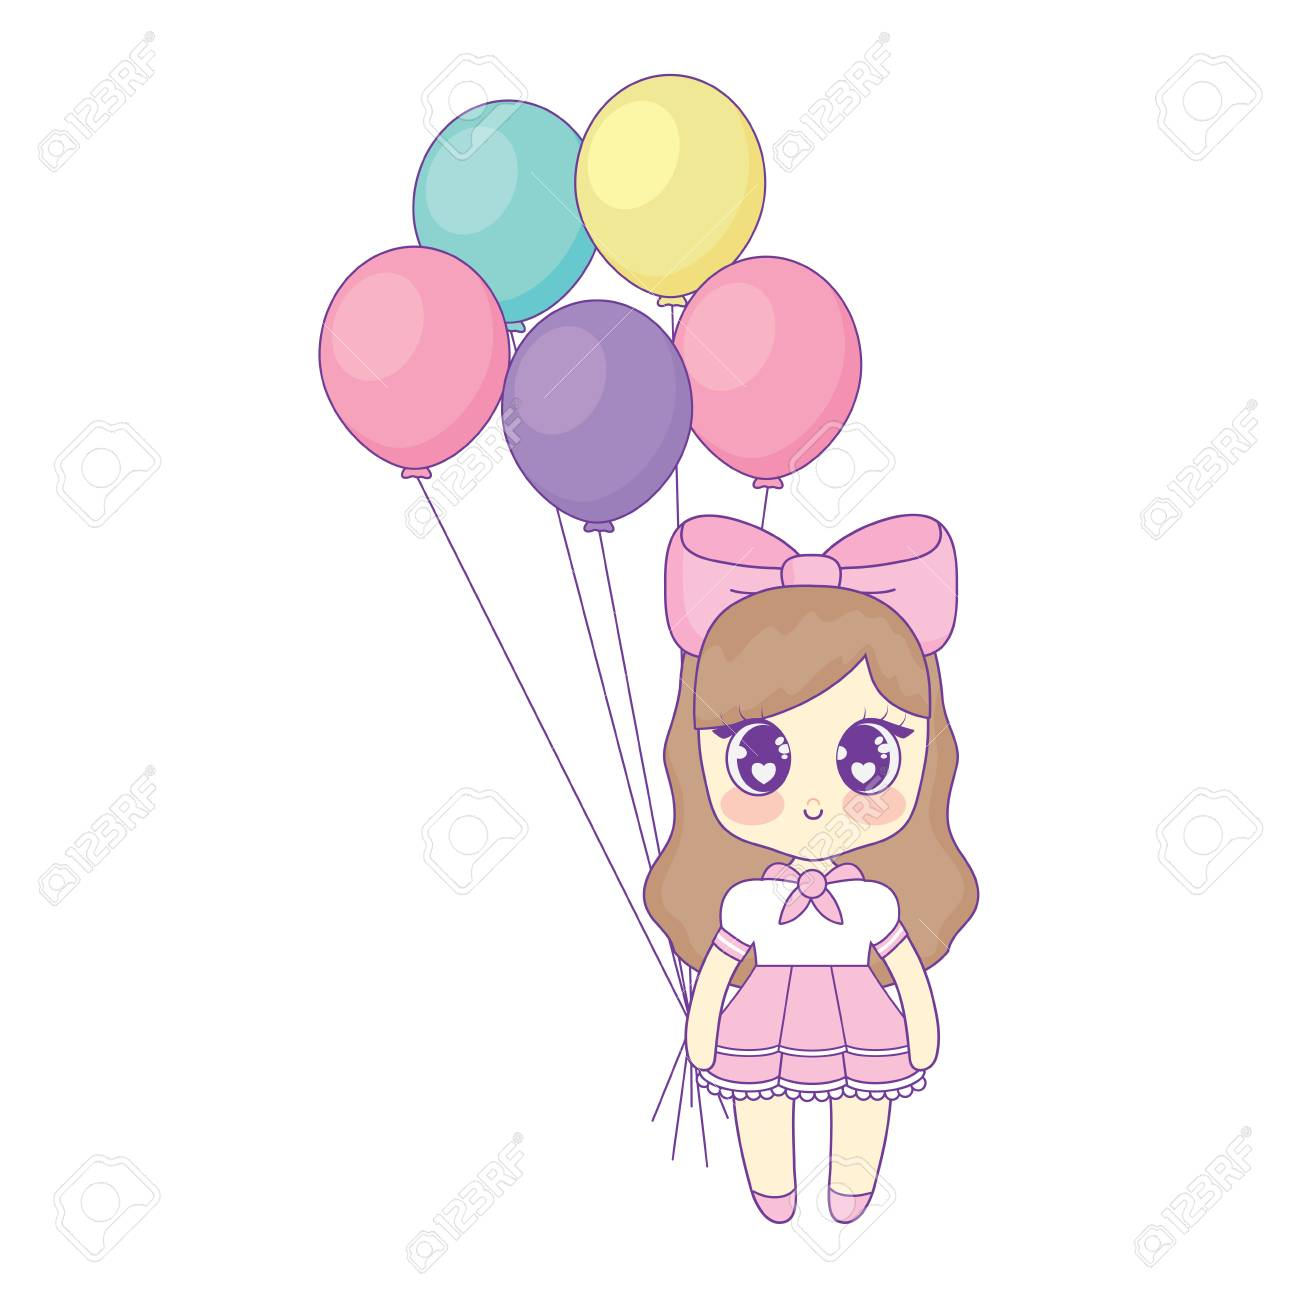 Happy Birthday Design With Anime Girl With Balloons Over White